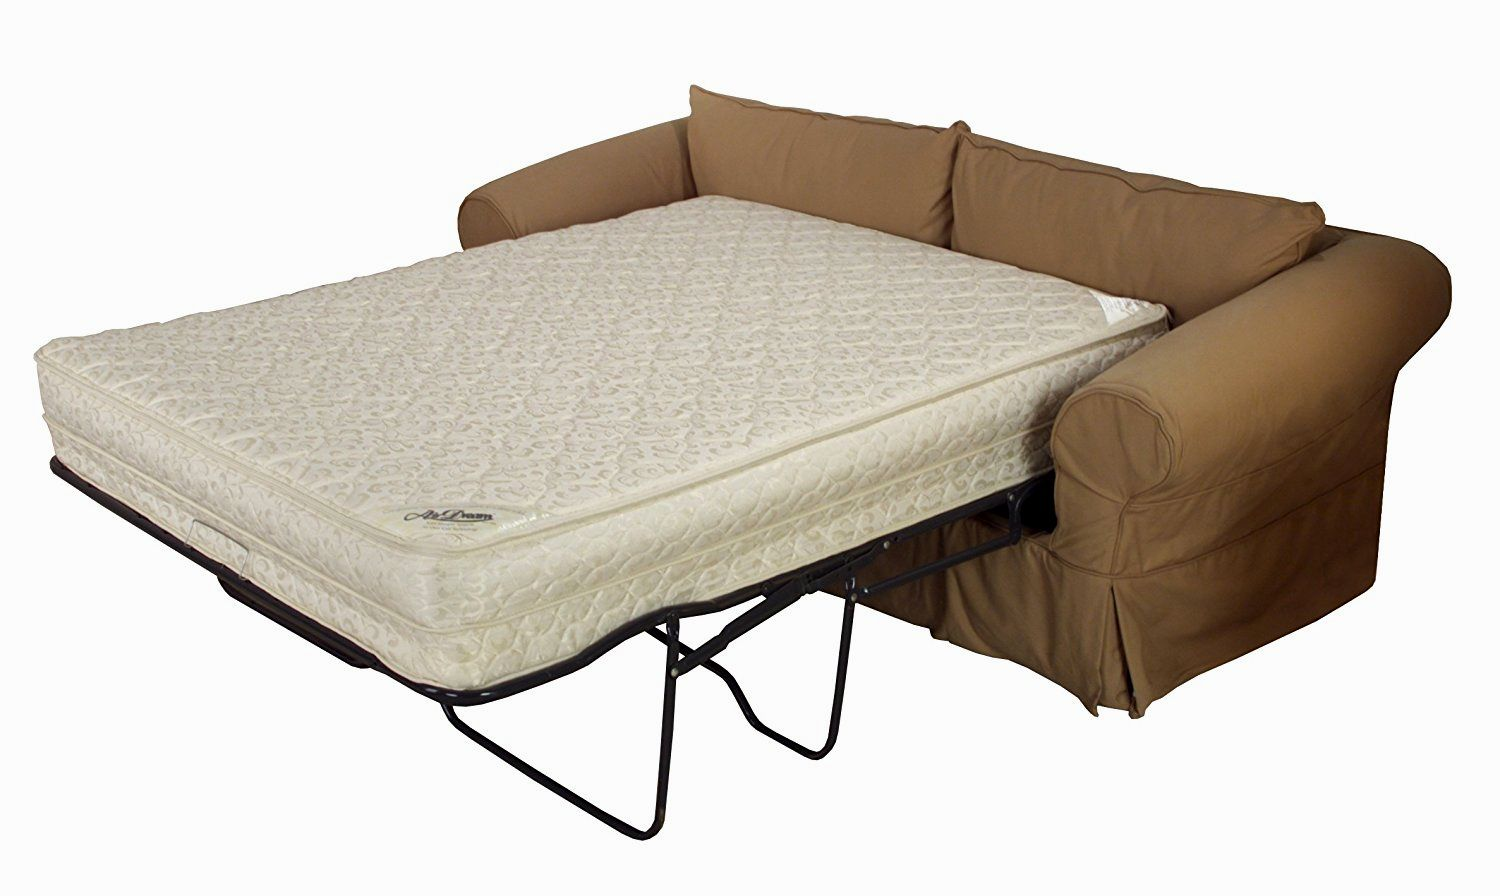 incredible sofa sleeper mattress ideas-Lovely sofa Sleeper Mattress Inspiration